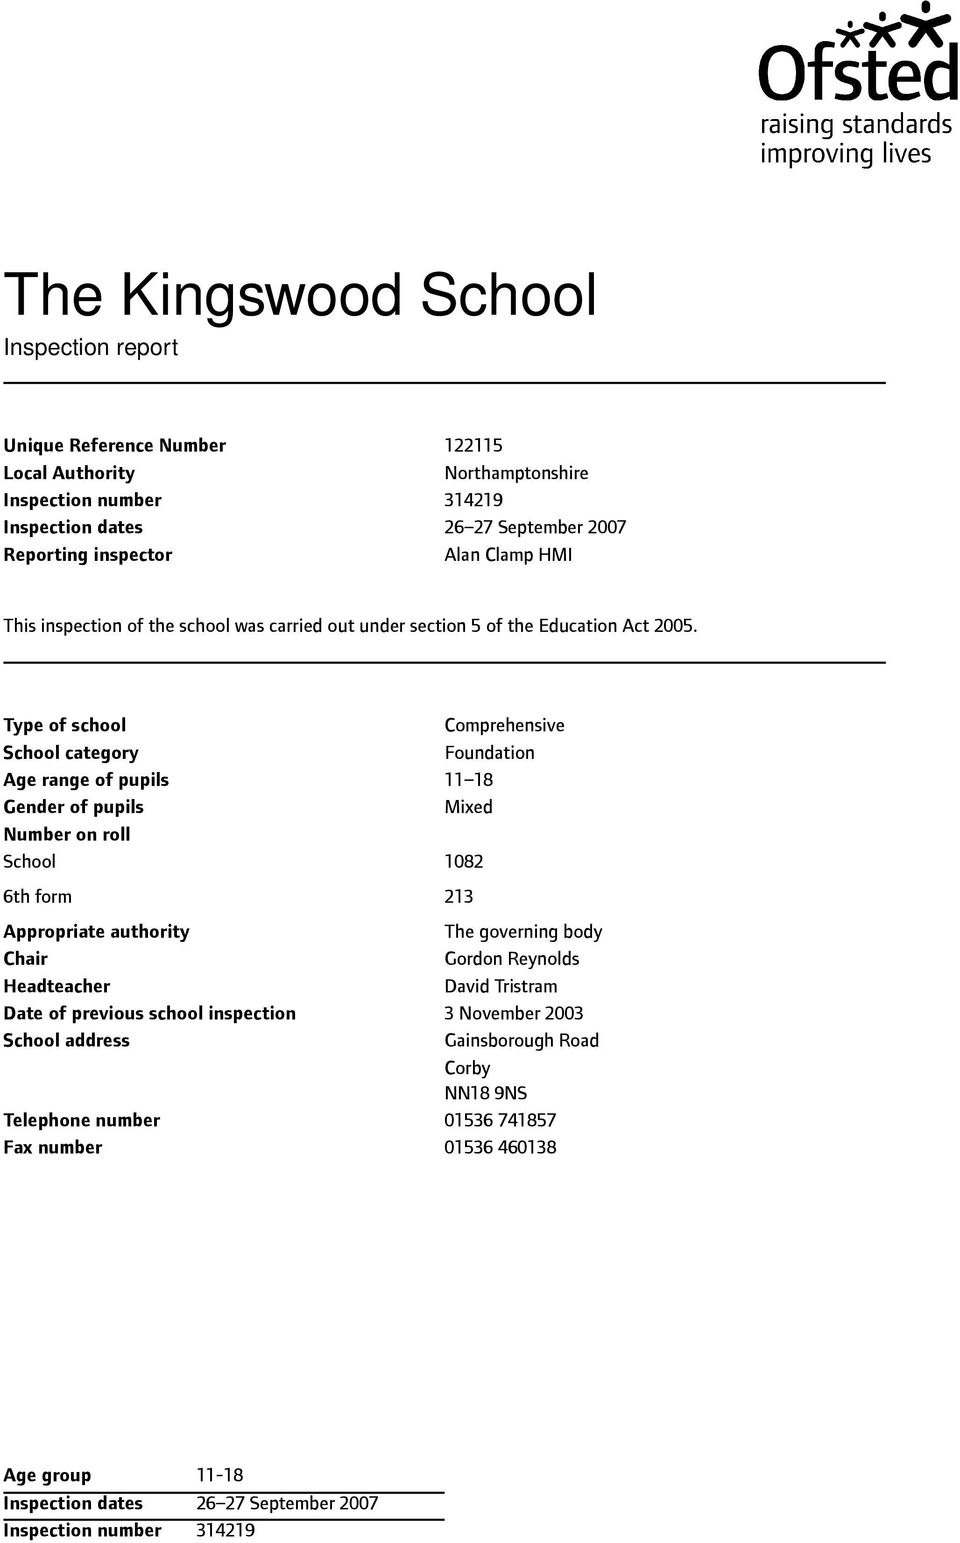 Type of school School category Age range of pupils Gender of pupils Number on roll School 6th form Appropriate authority Chair Headteacher Date of previous school inspection School